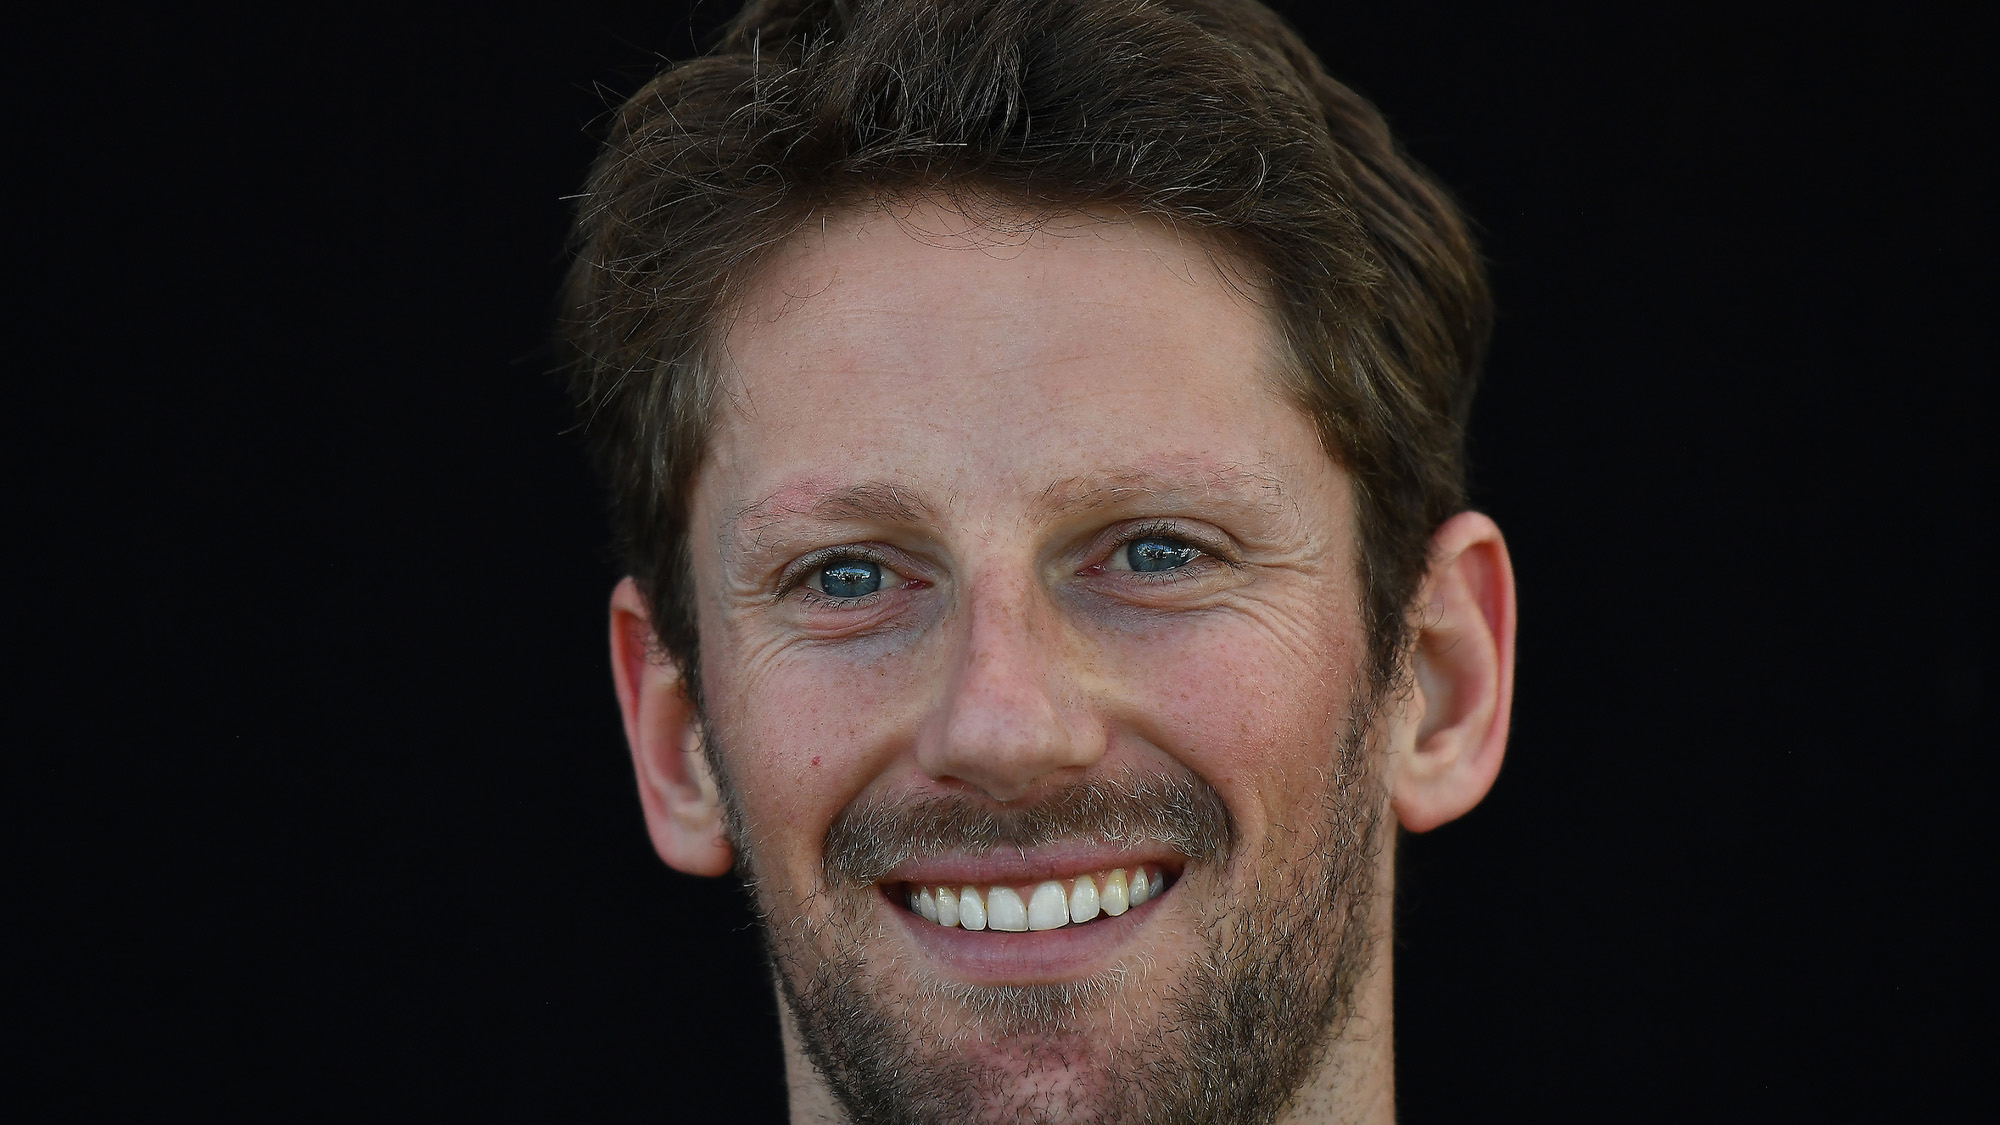 Romain Grosjean portrait from 2018